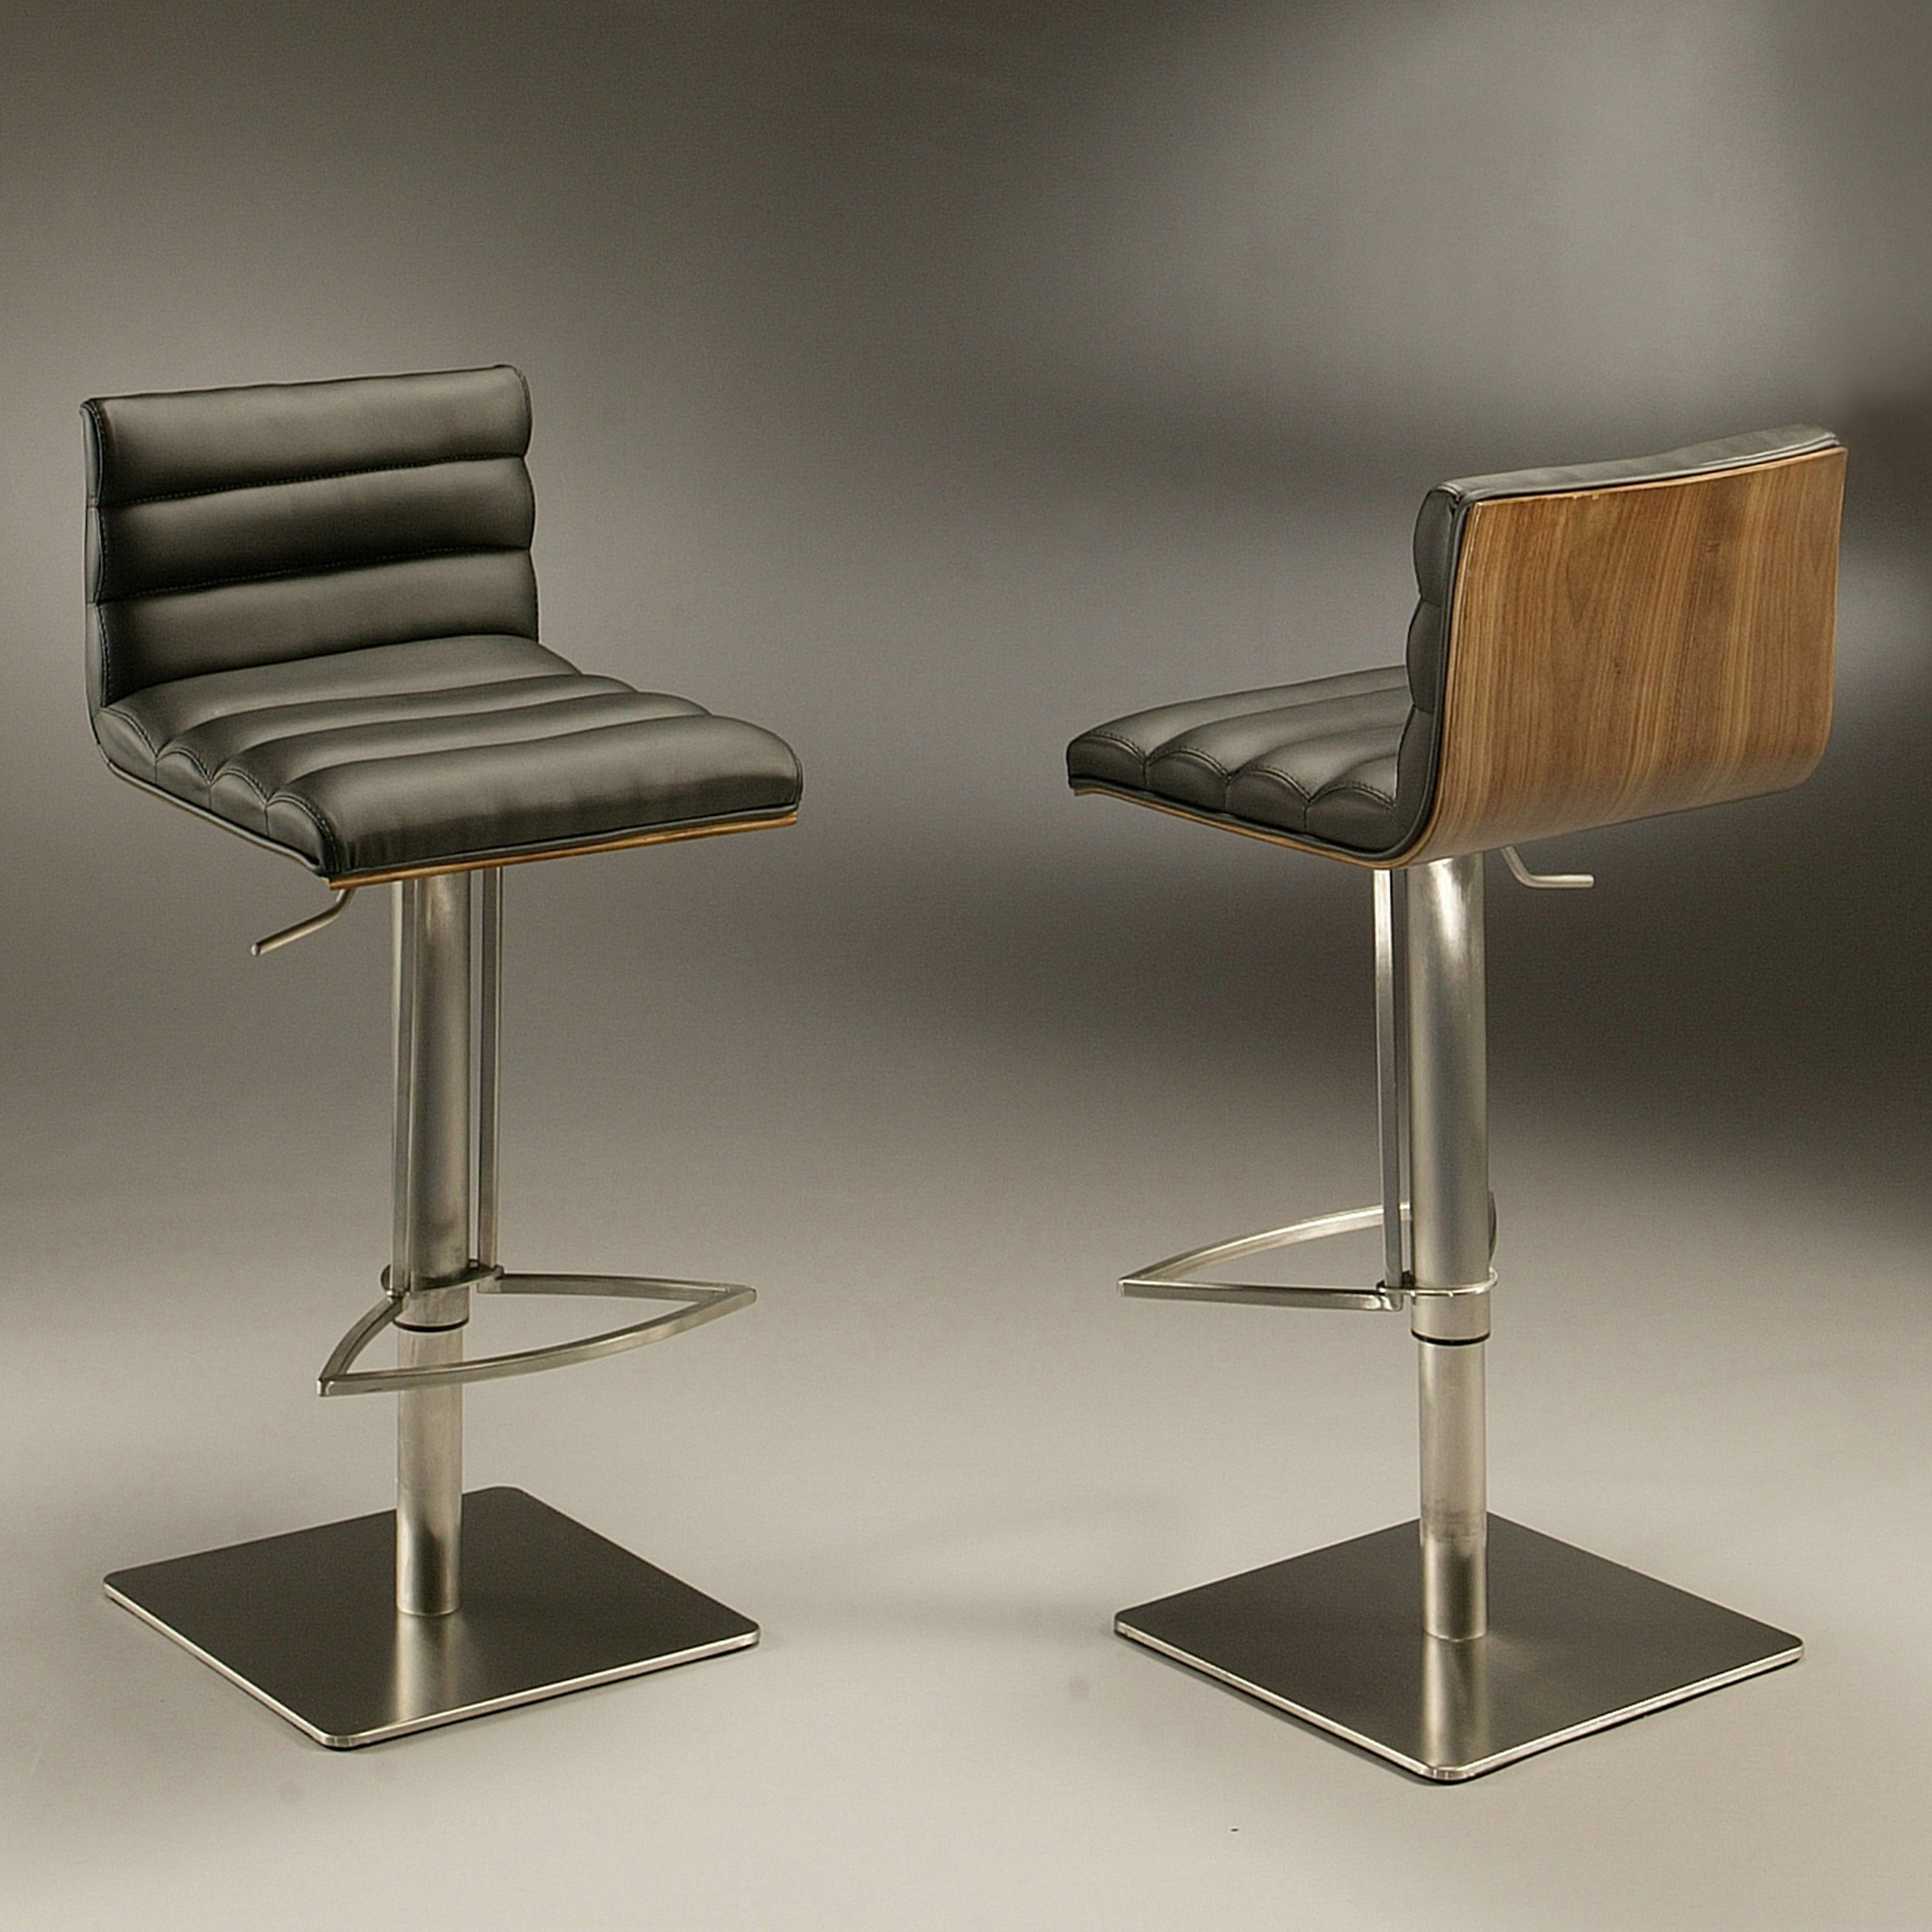 Impacterra Adjustable Dubai Hydraulic Bar Stool - Stainless Steel